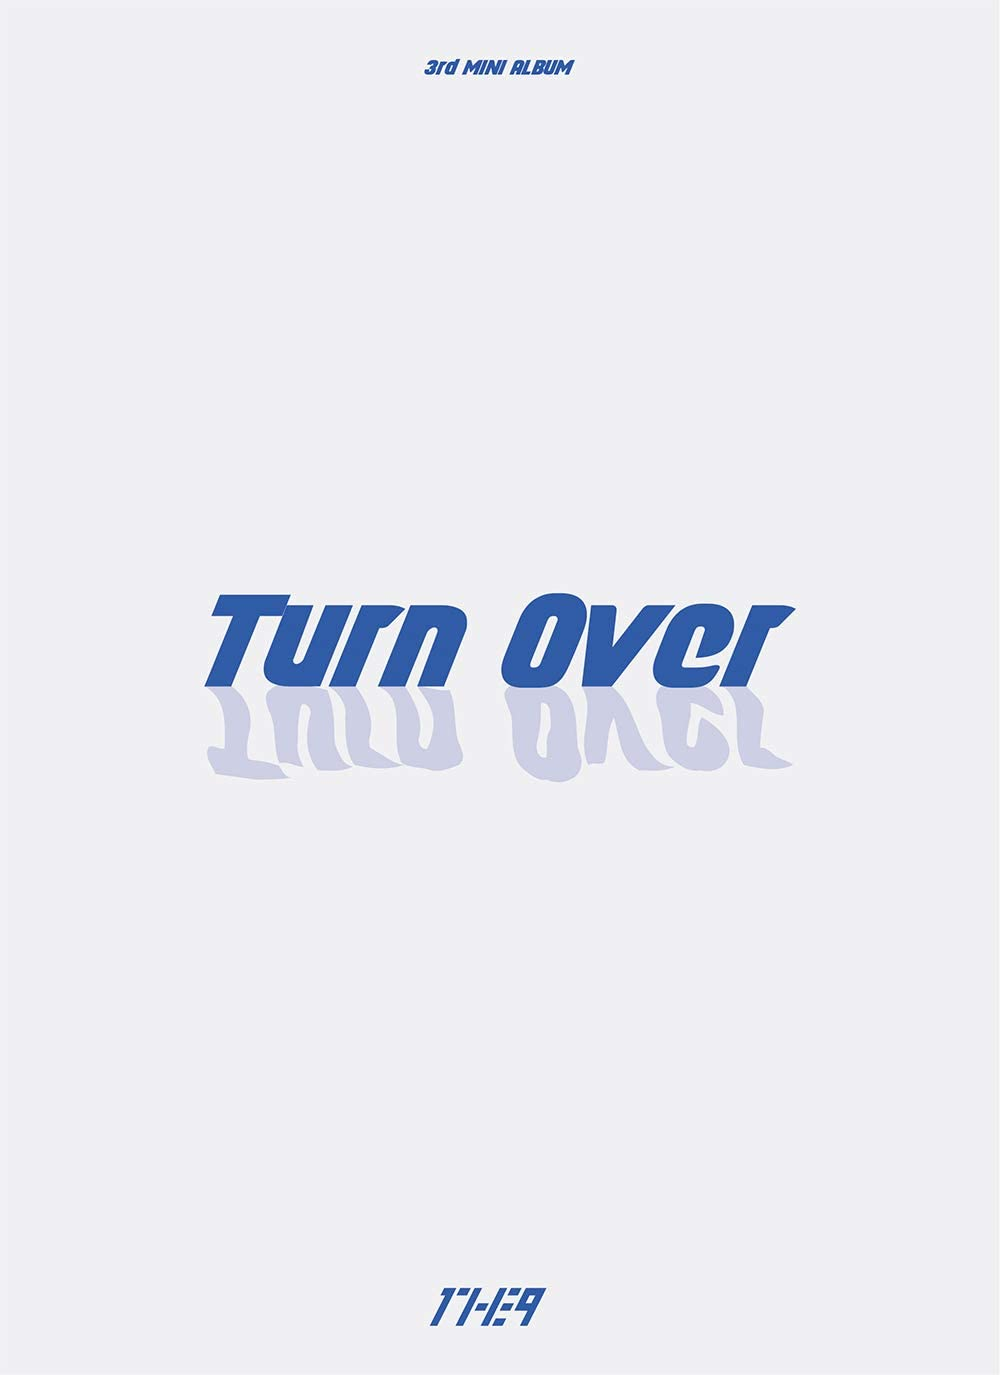 1THE9 - TURN OVER [3rd Mini Album]